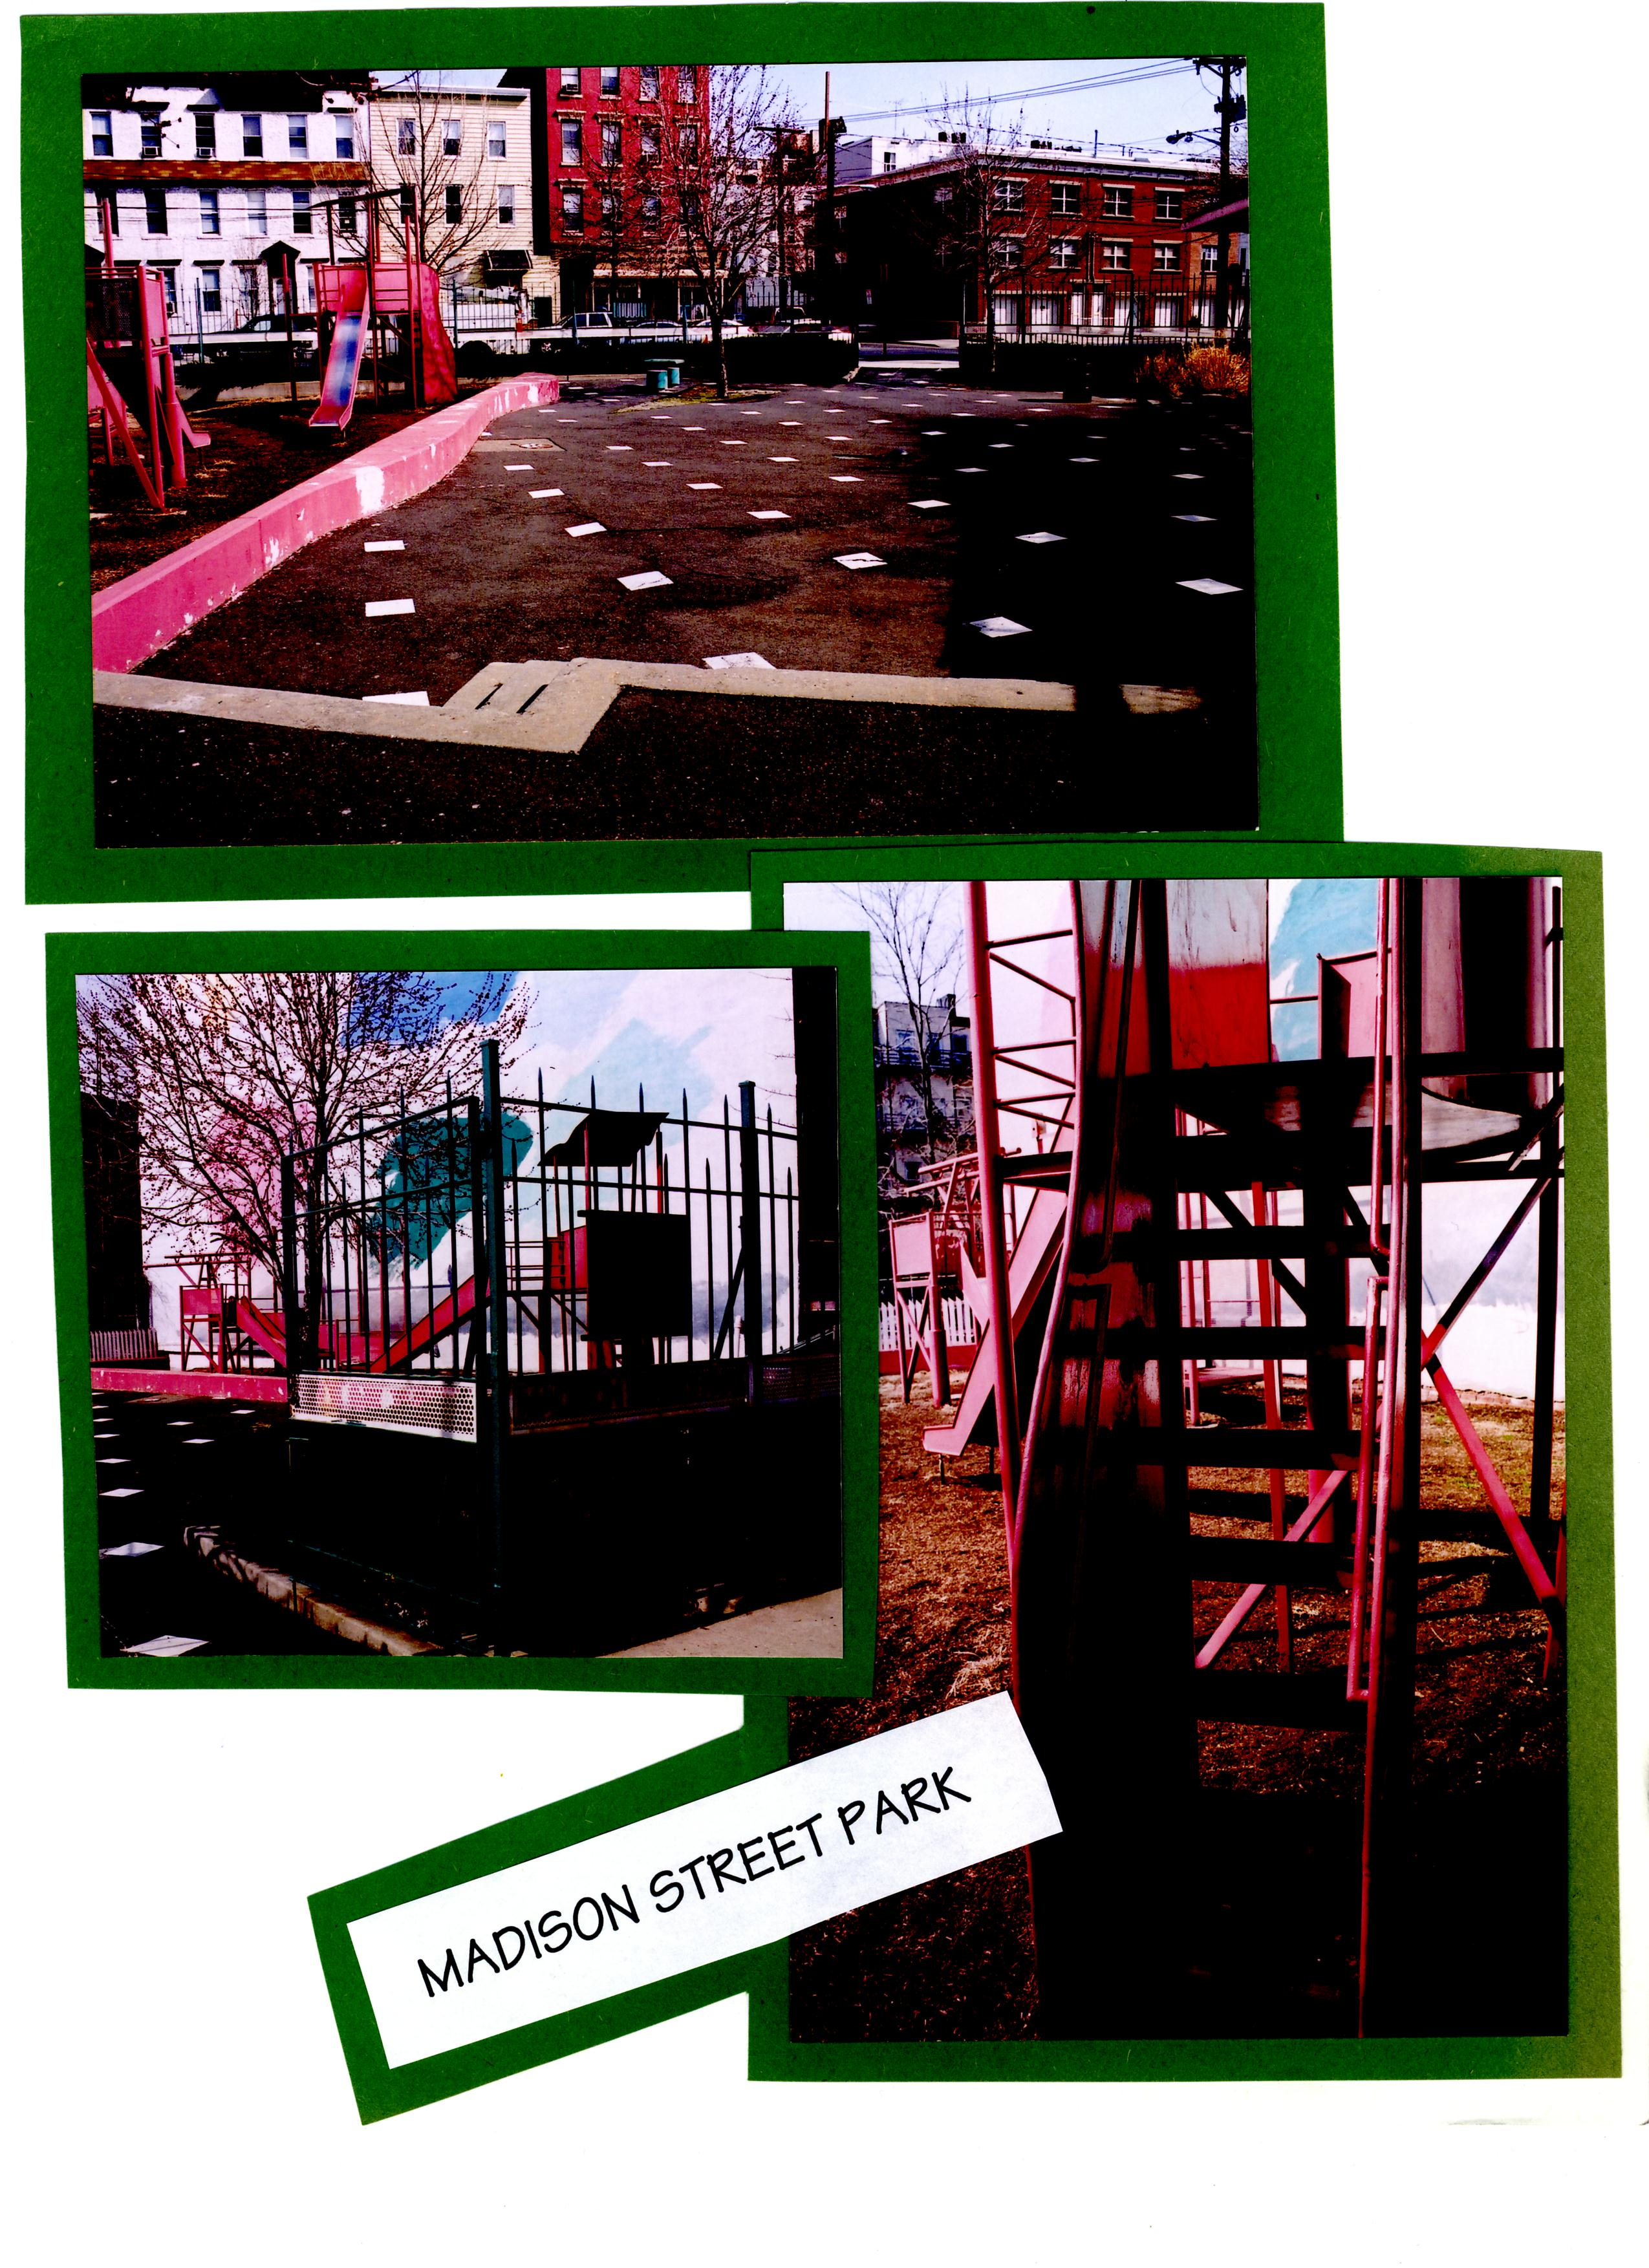 Madison Street Park (Before)